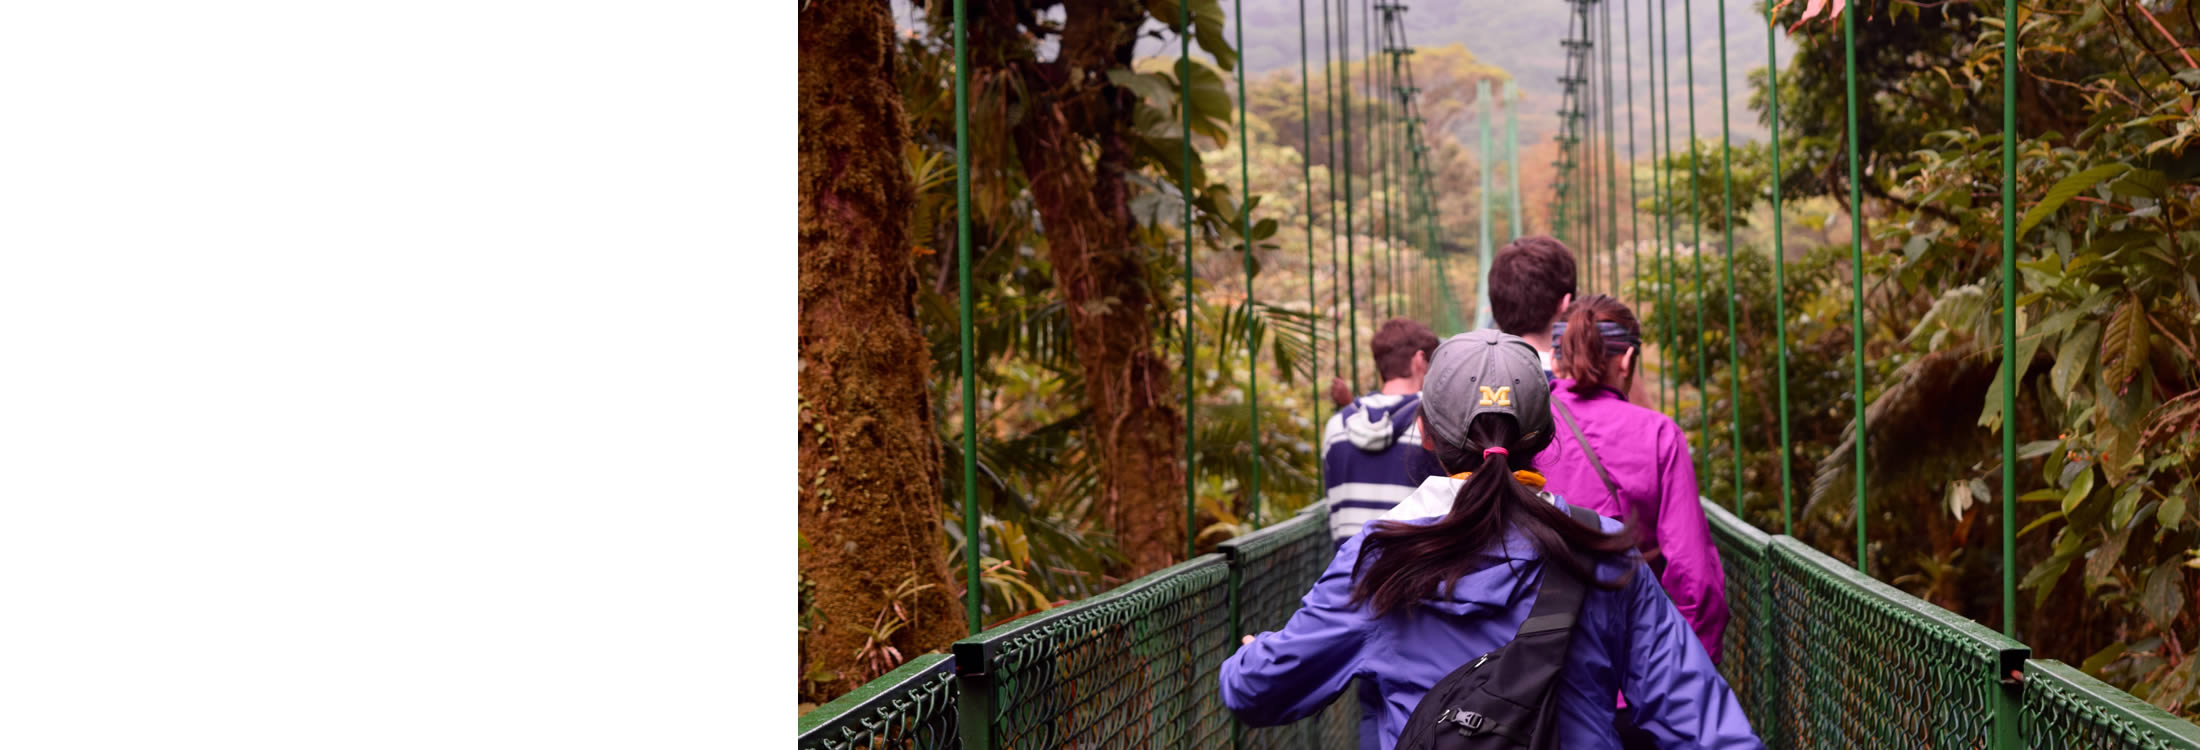 Photo of BA students walking on a pedestrian bridge above a Costa Rican forest